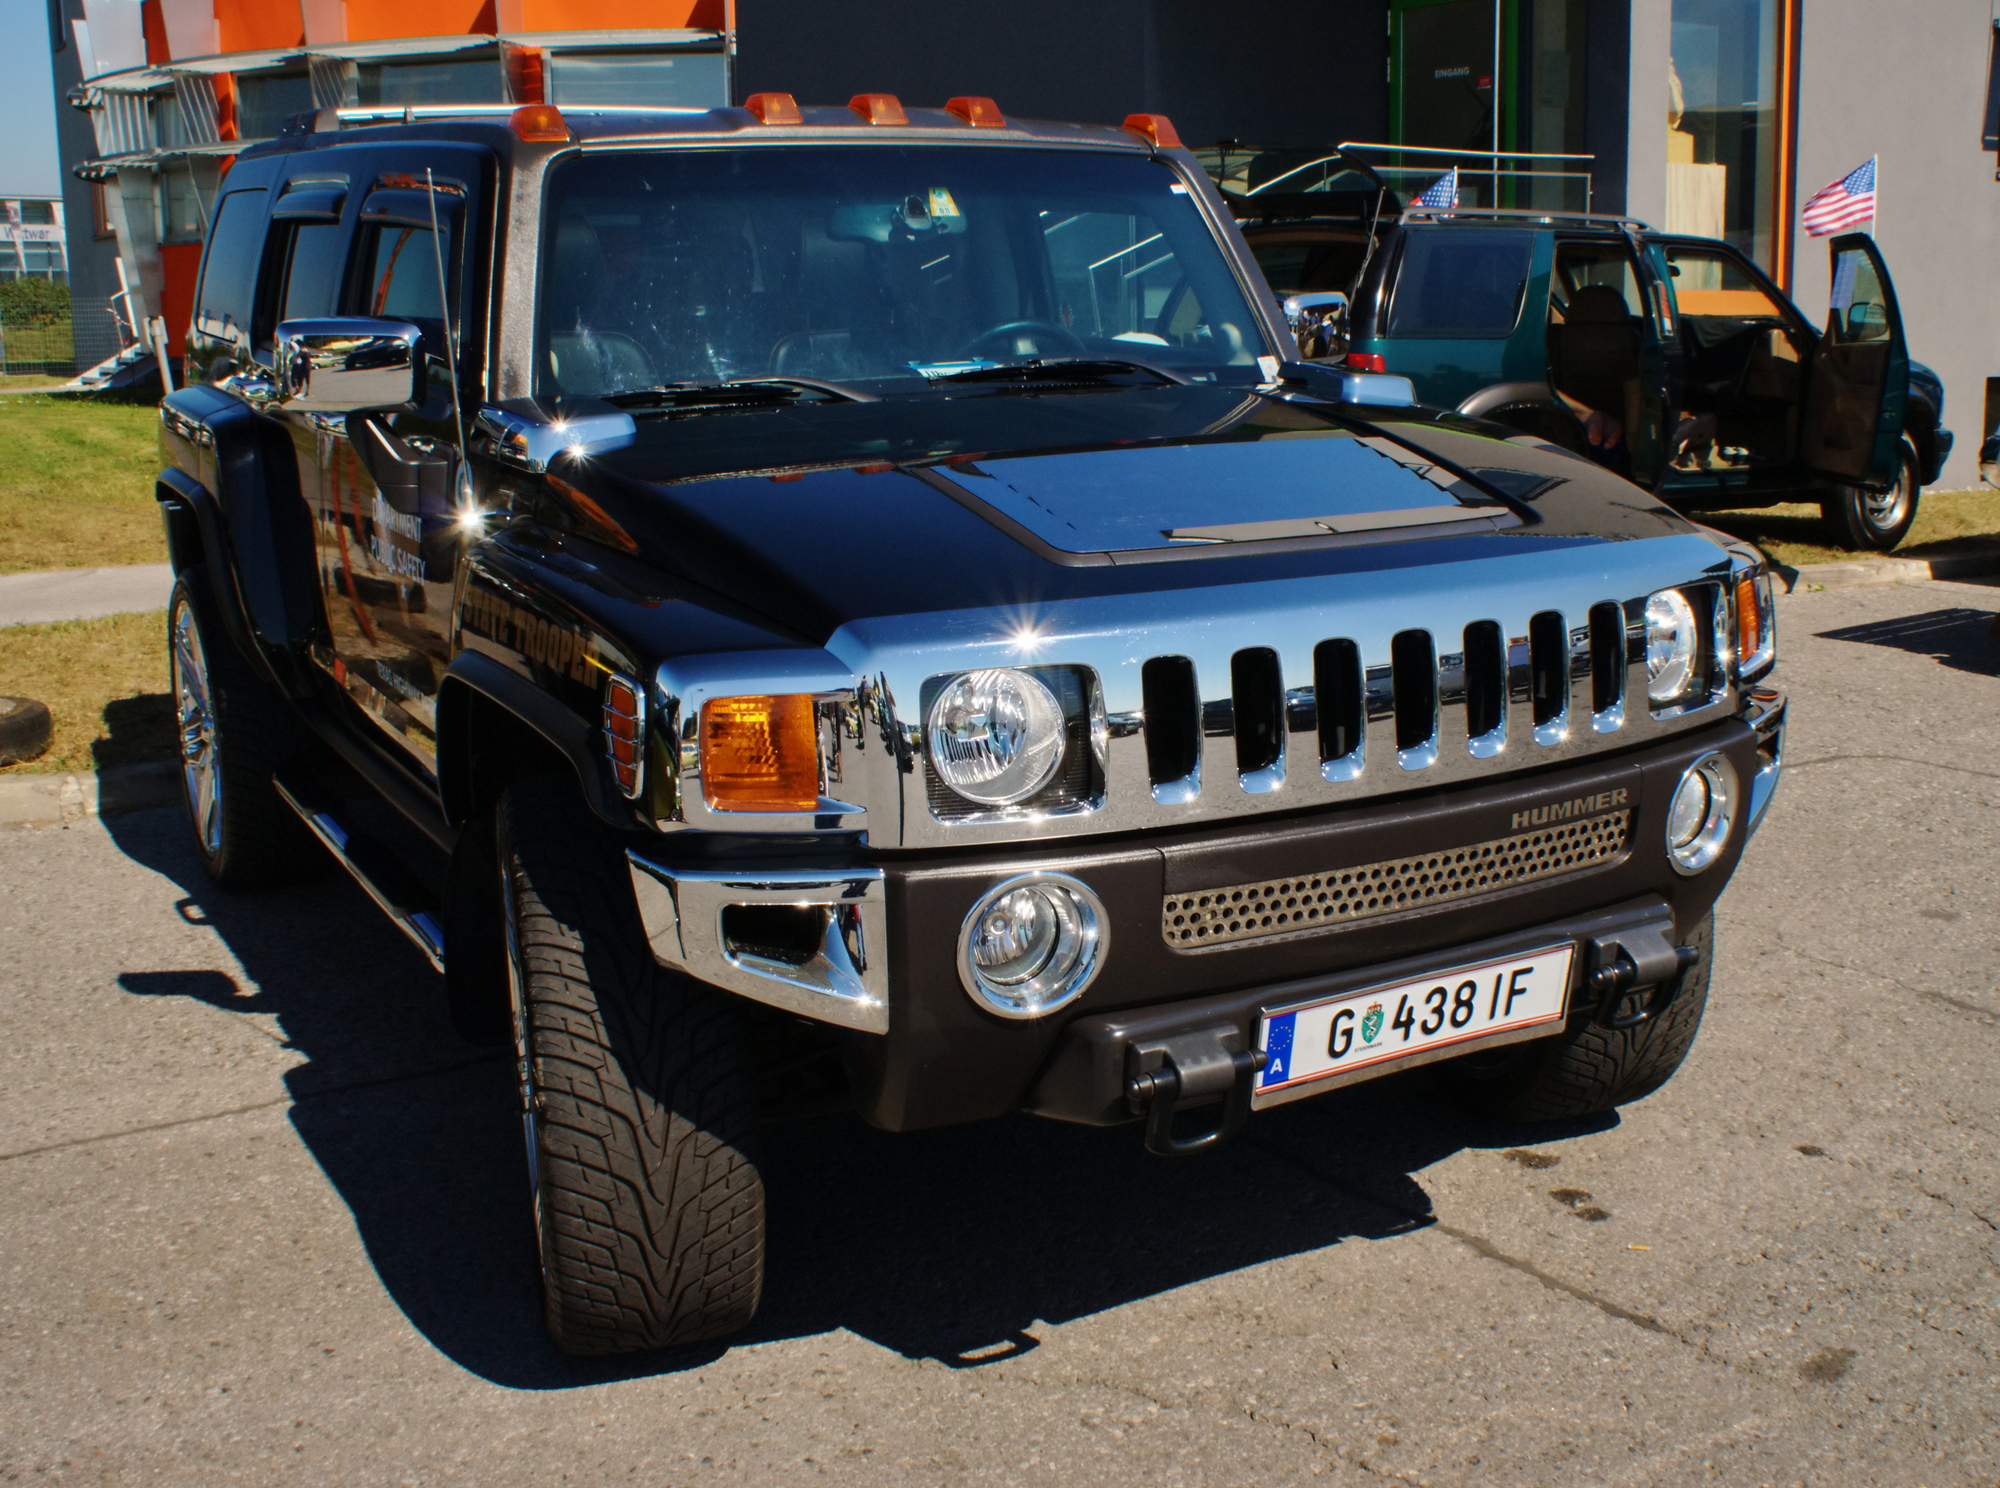 Looking for a Hummer Repair Shop in Phoenix